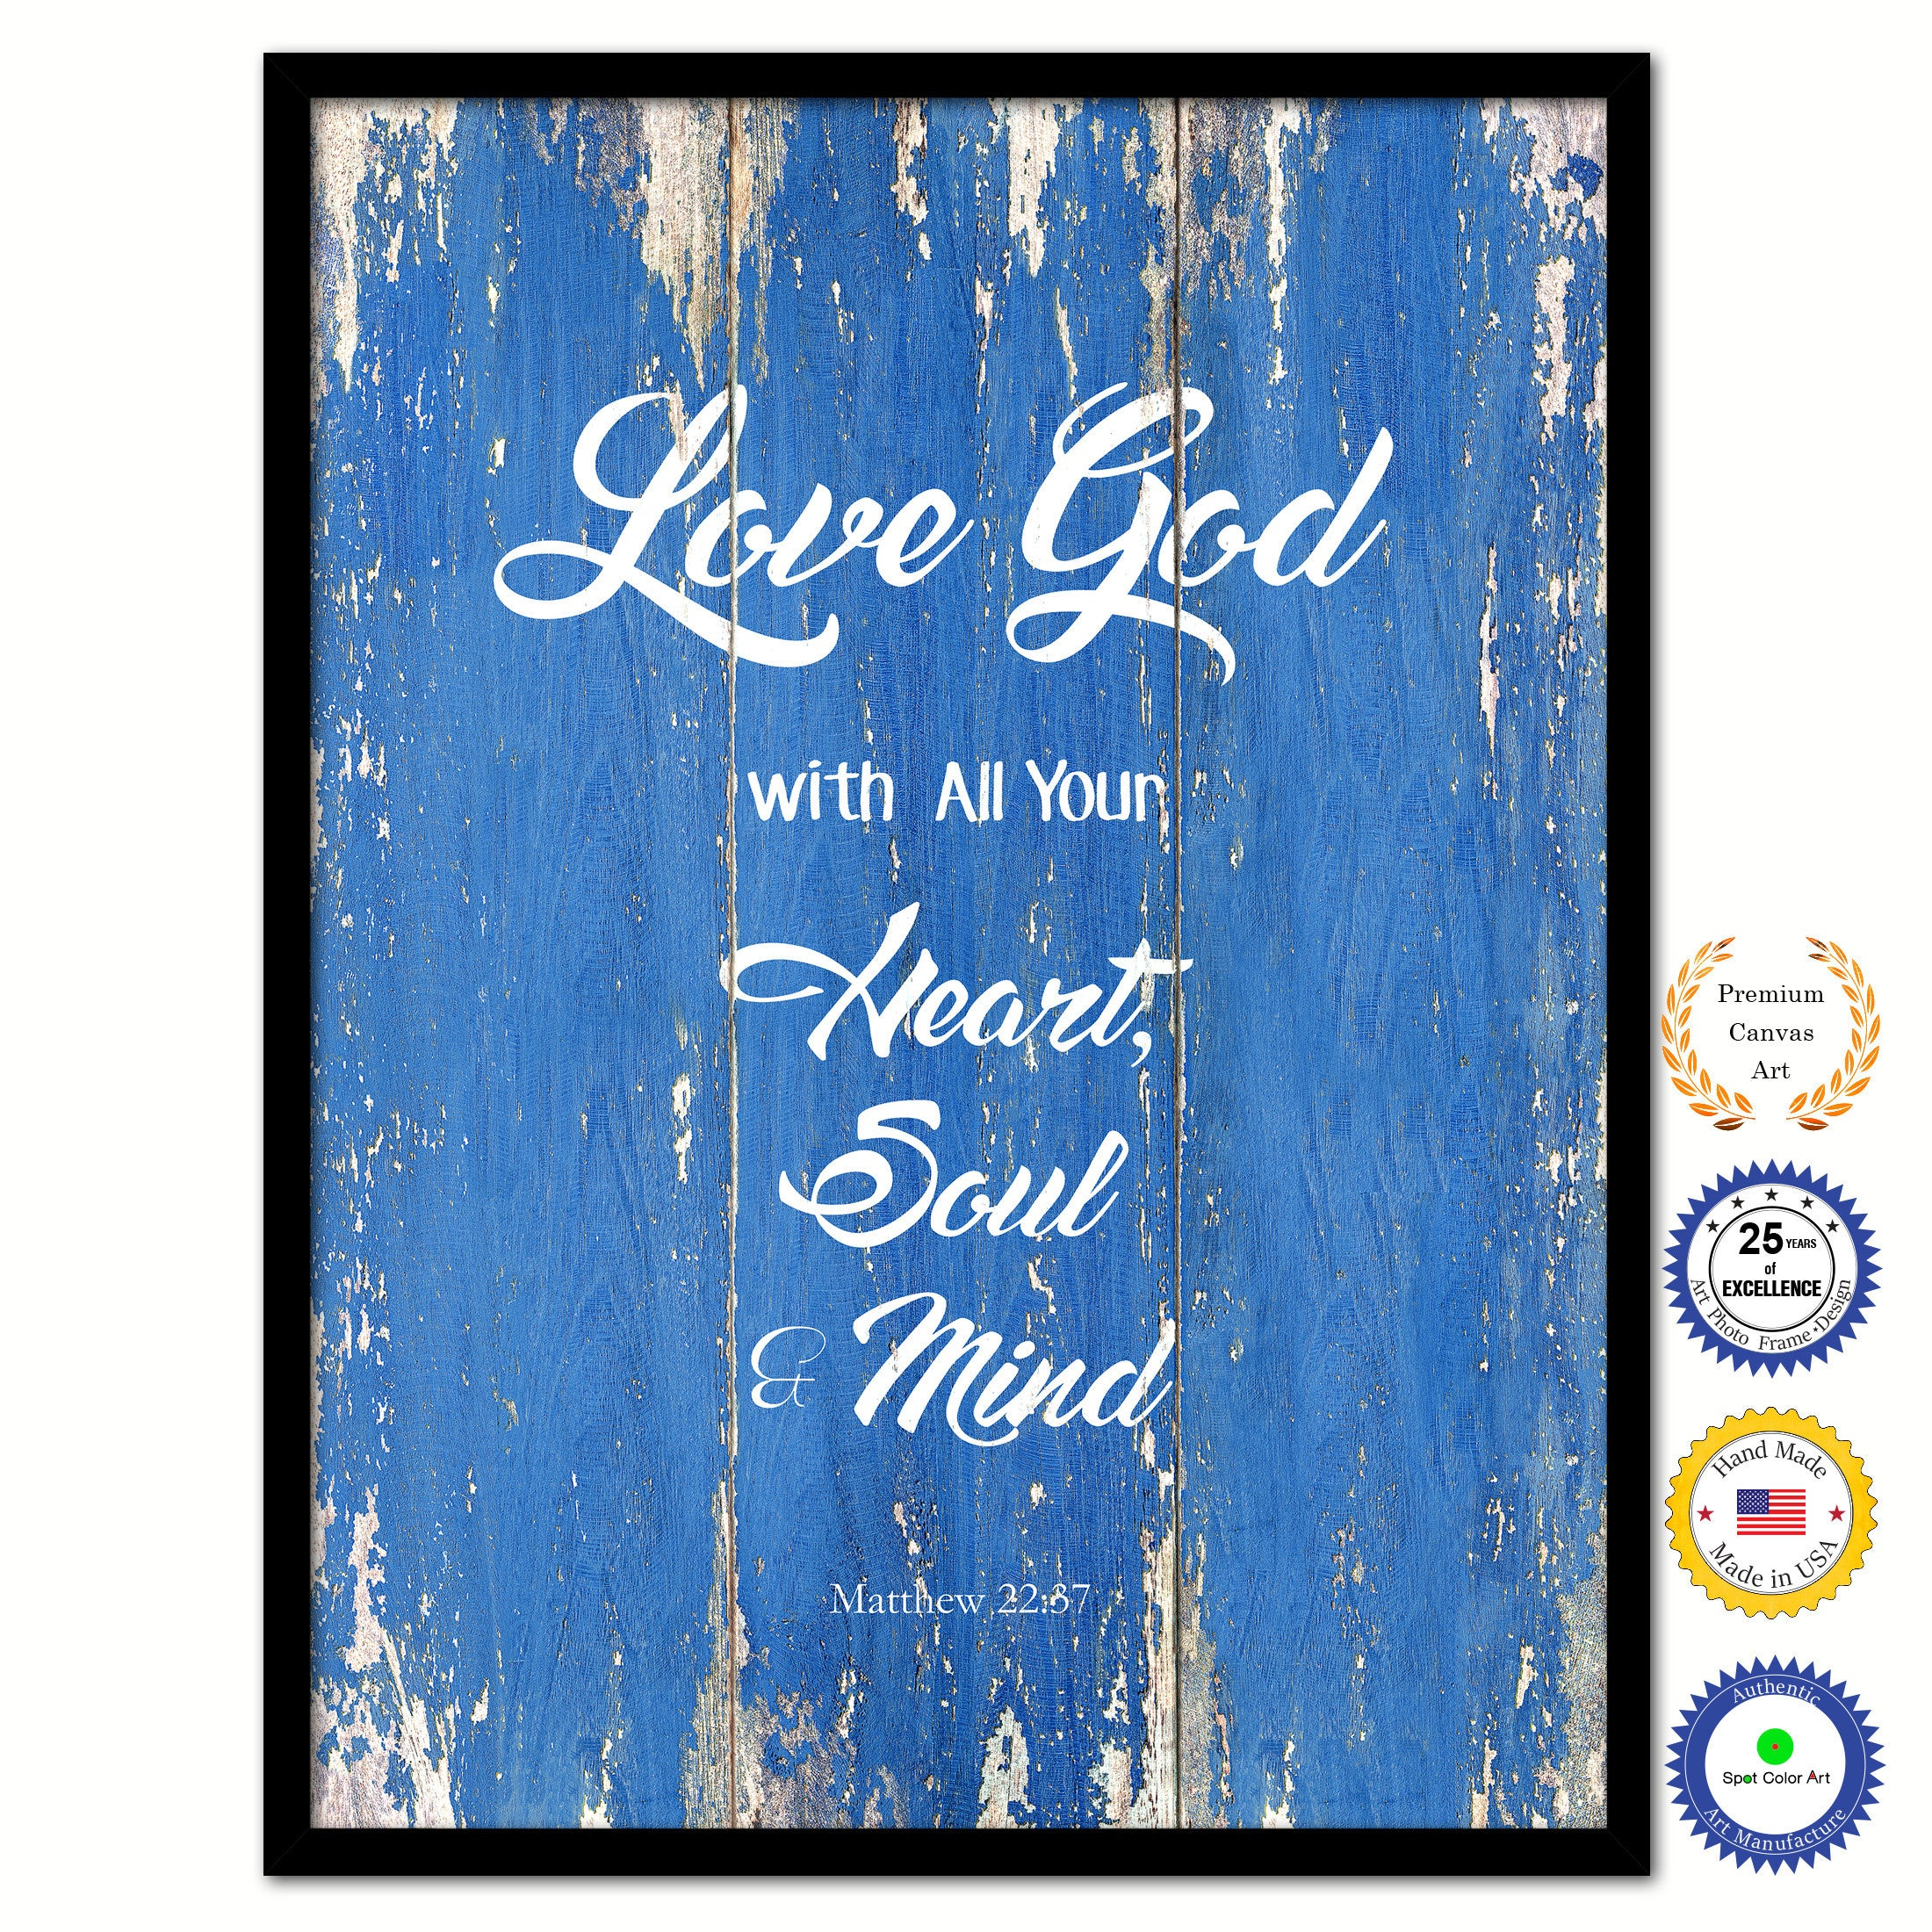 Love God with All Your Heart, Soul & Mind - Matthew 22:37 Bible Verse  Scripture Quote Blue Canvas Print with Picture Frame